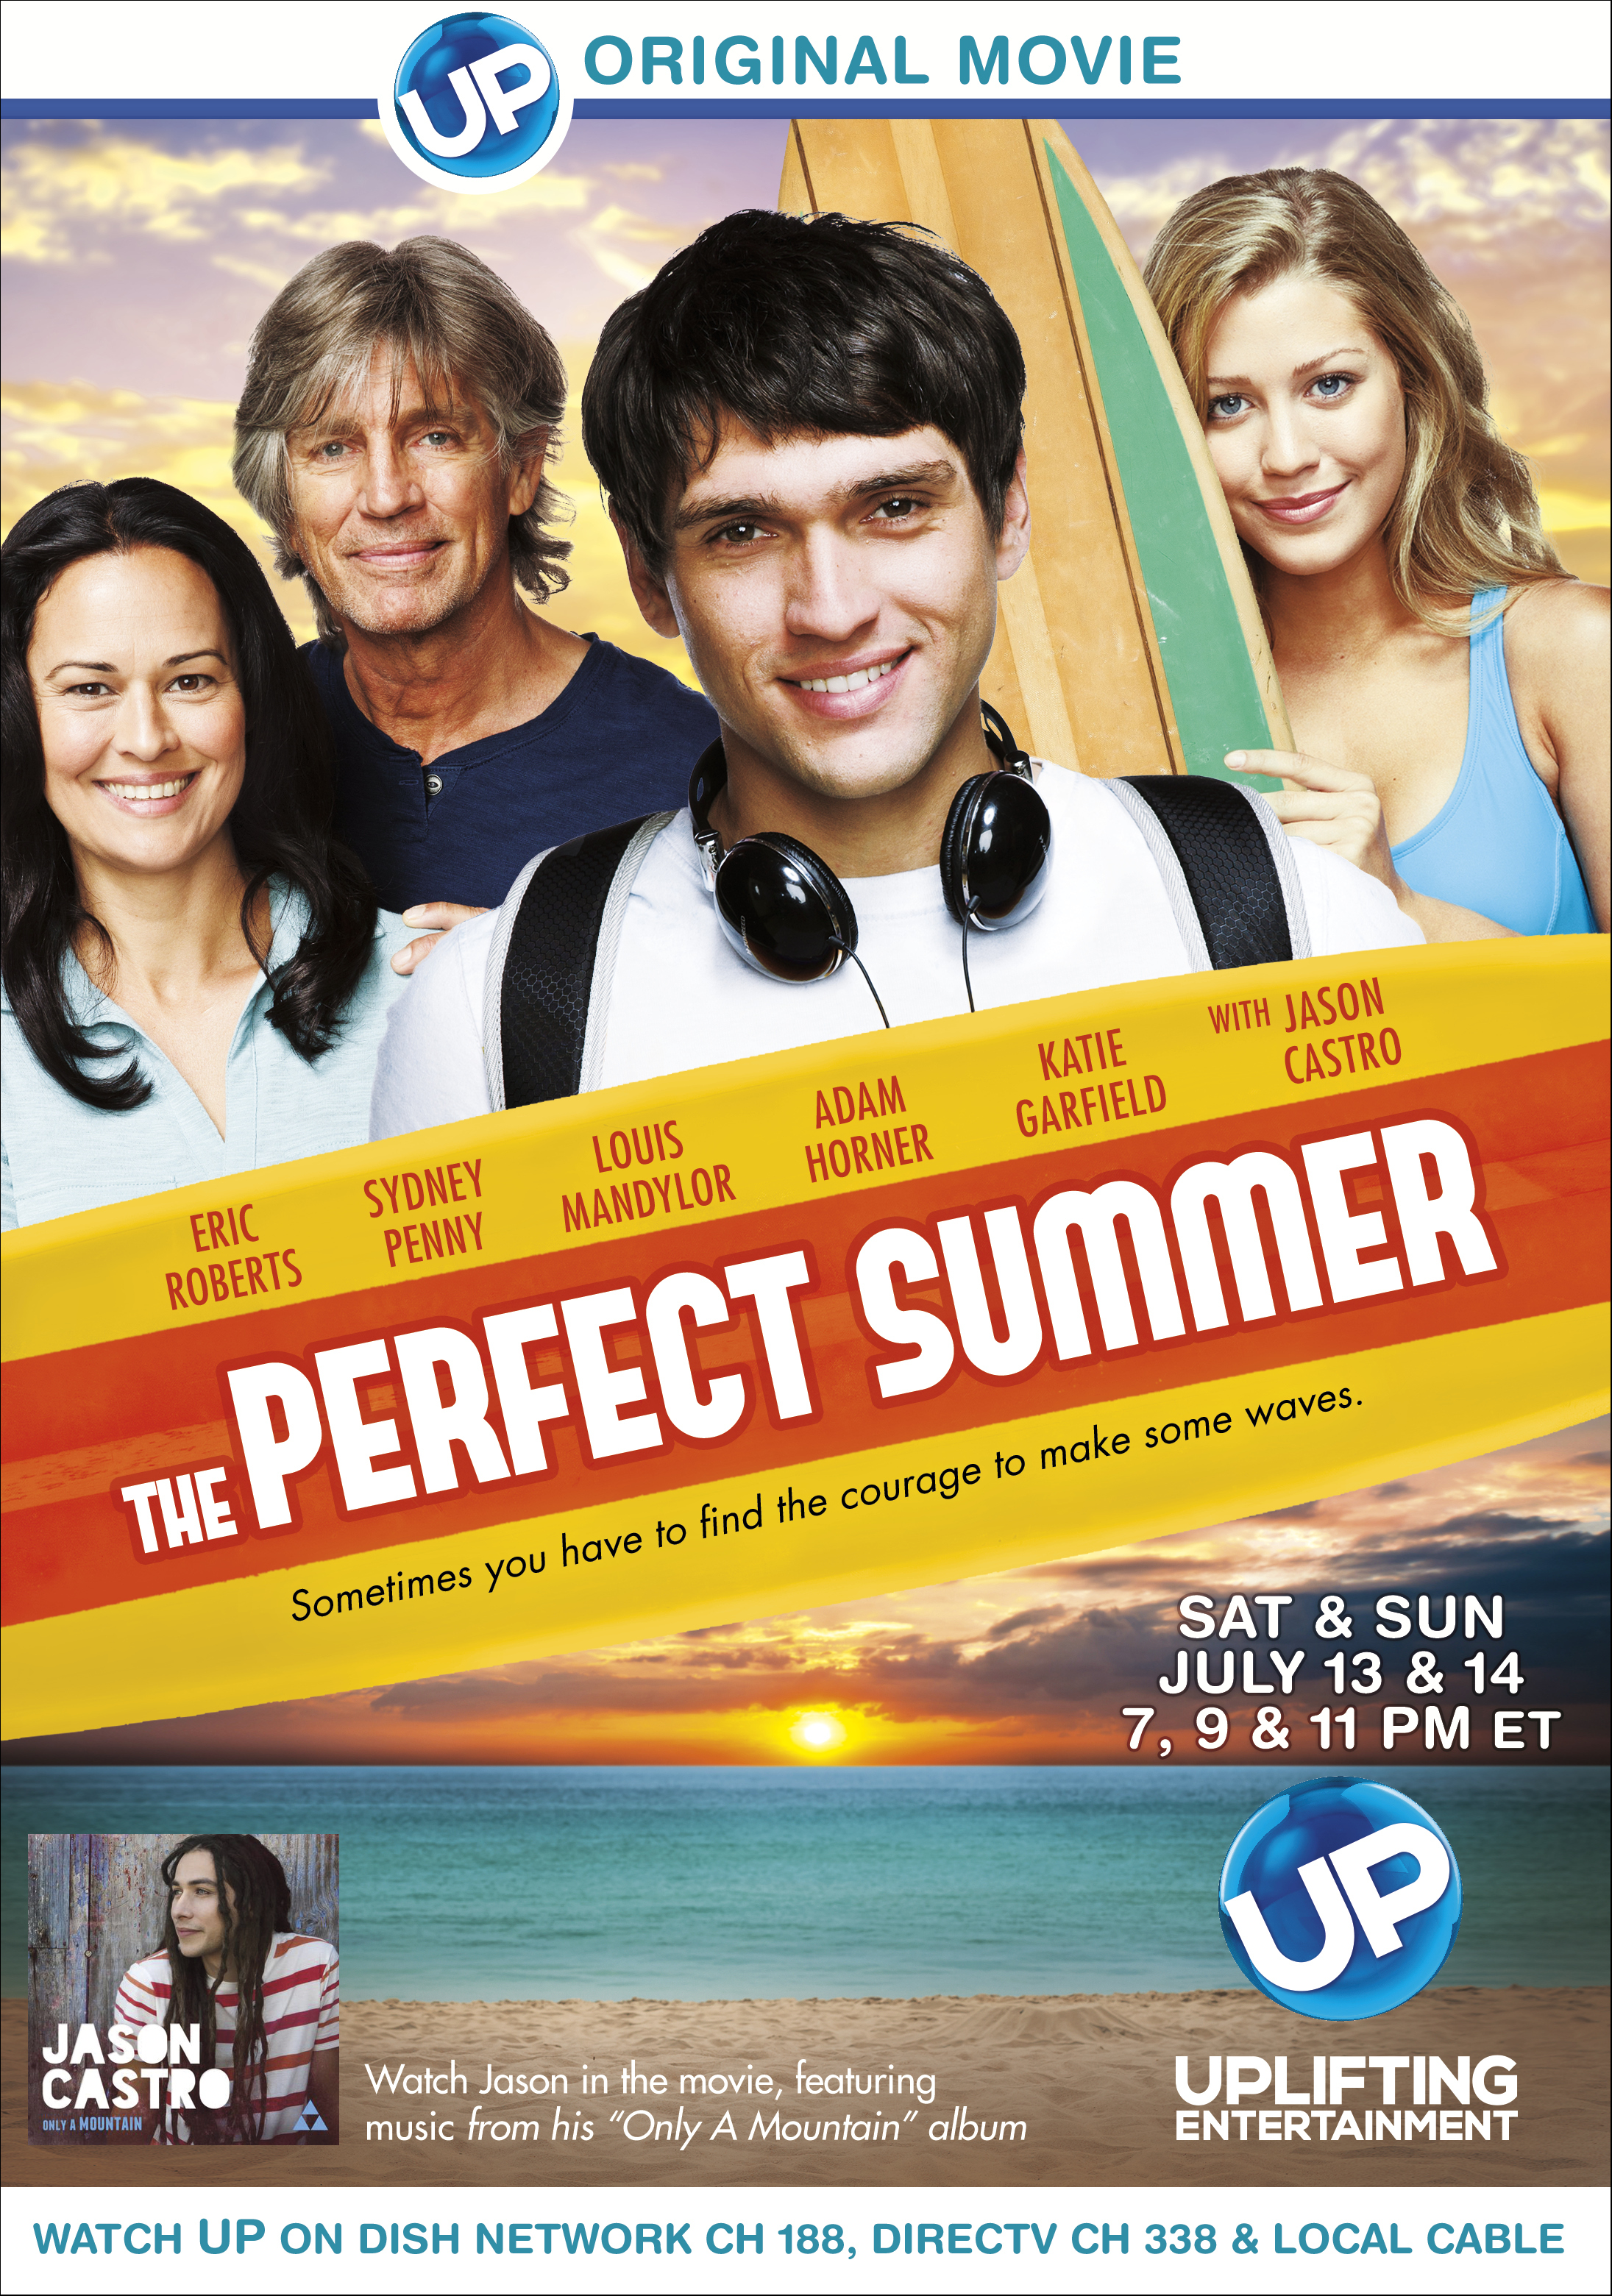 The Perfect Summer – A Great Movie For the Family